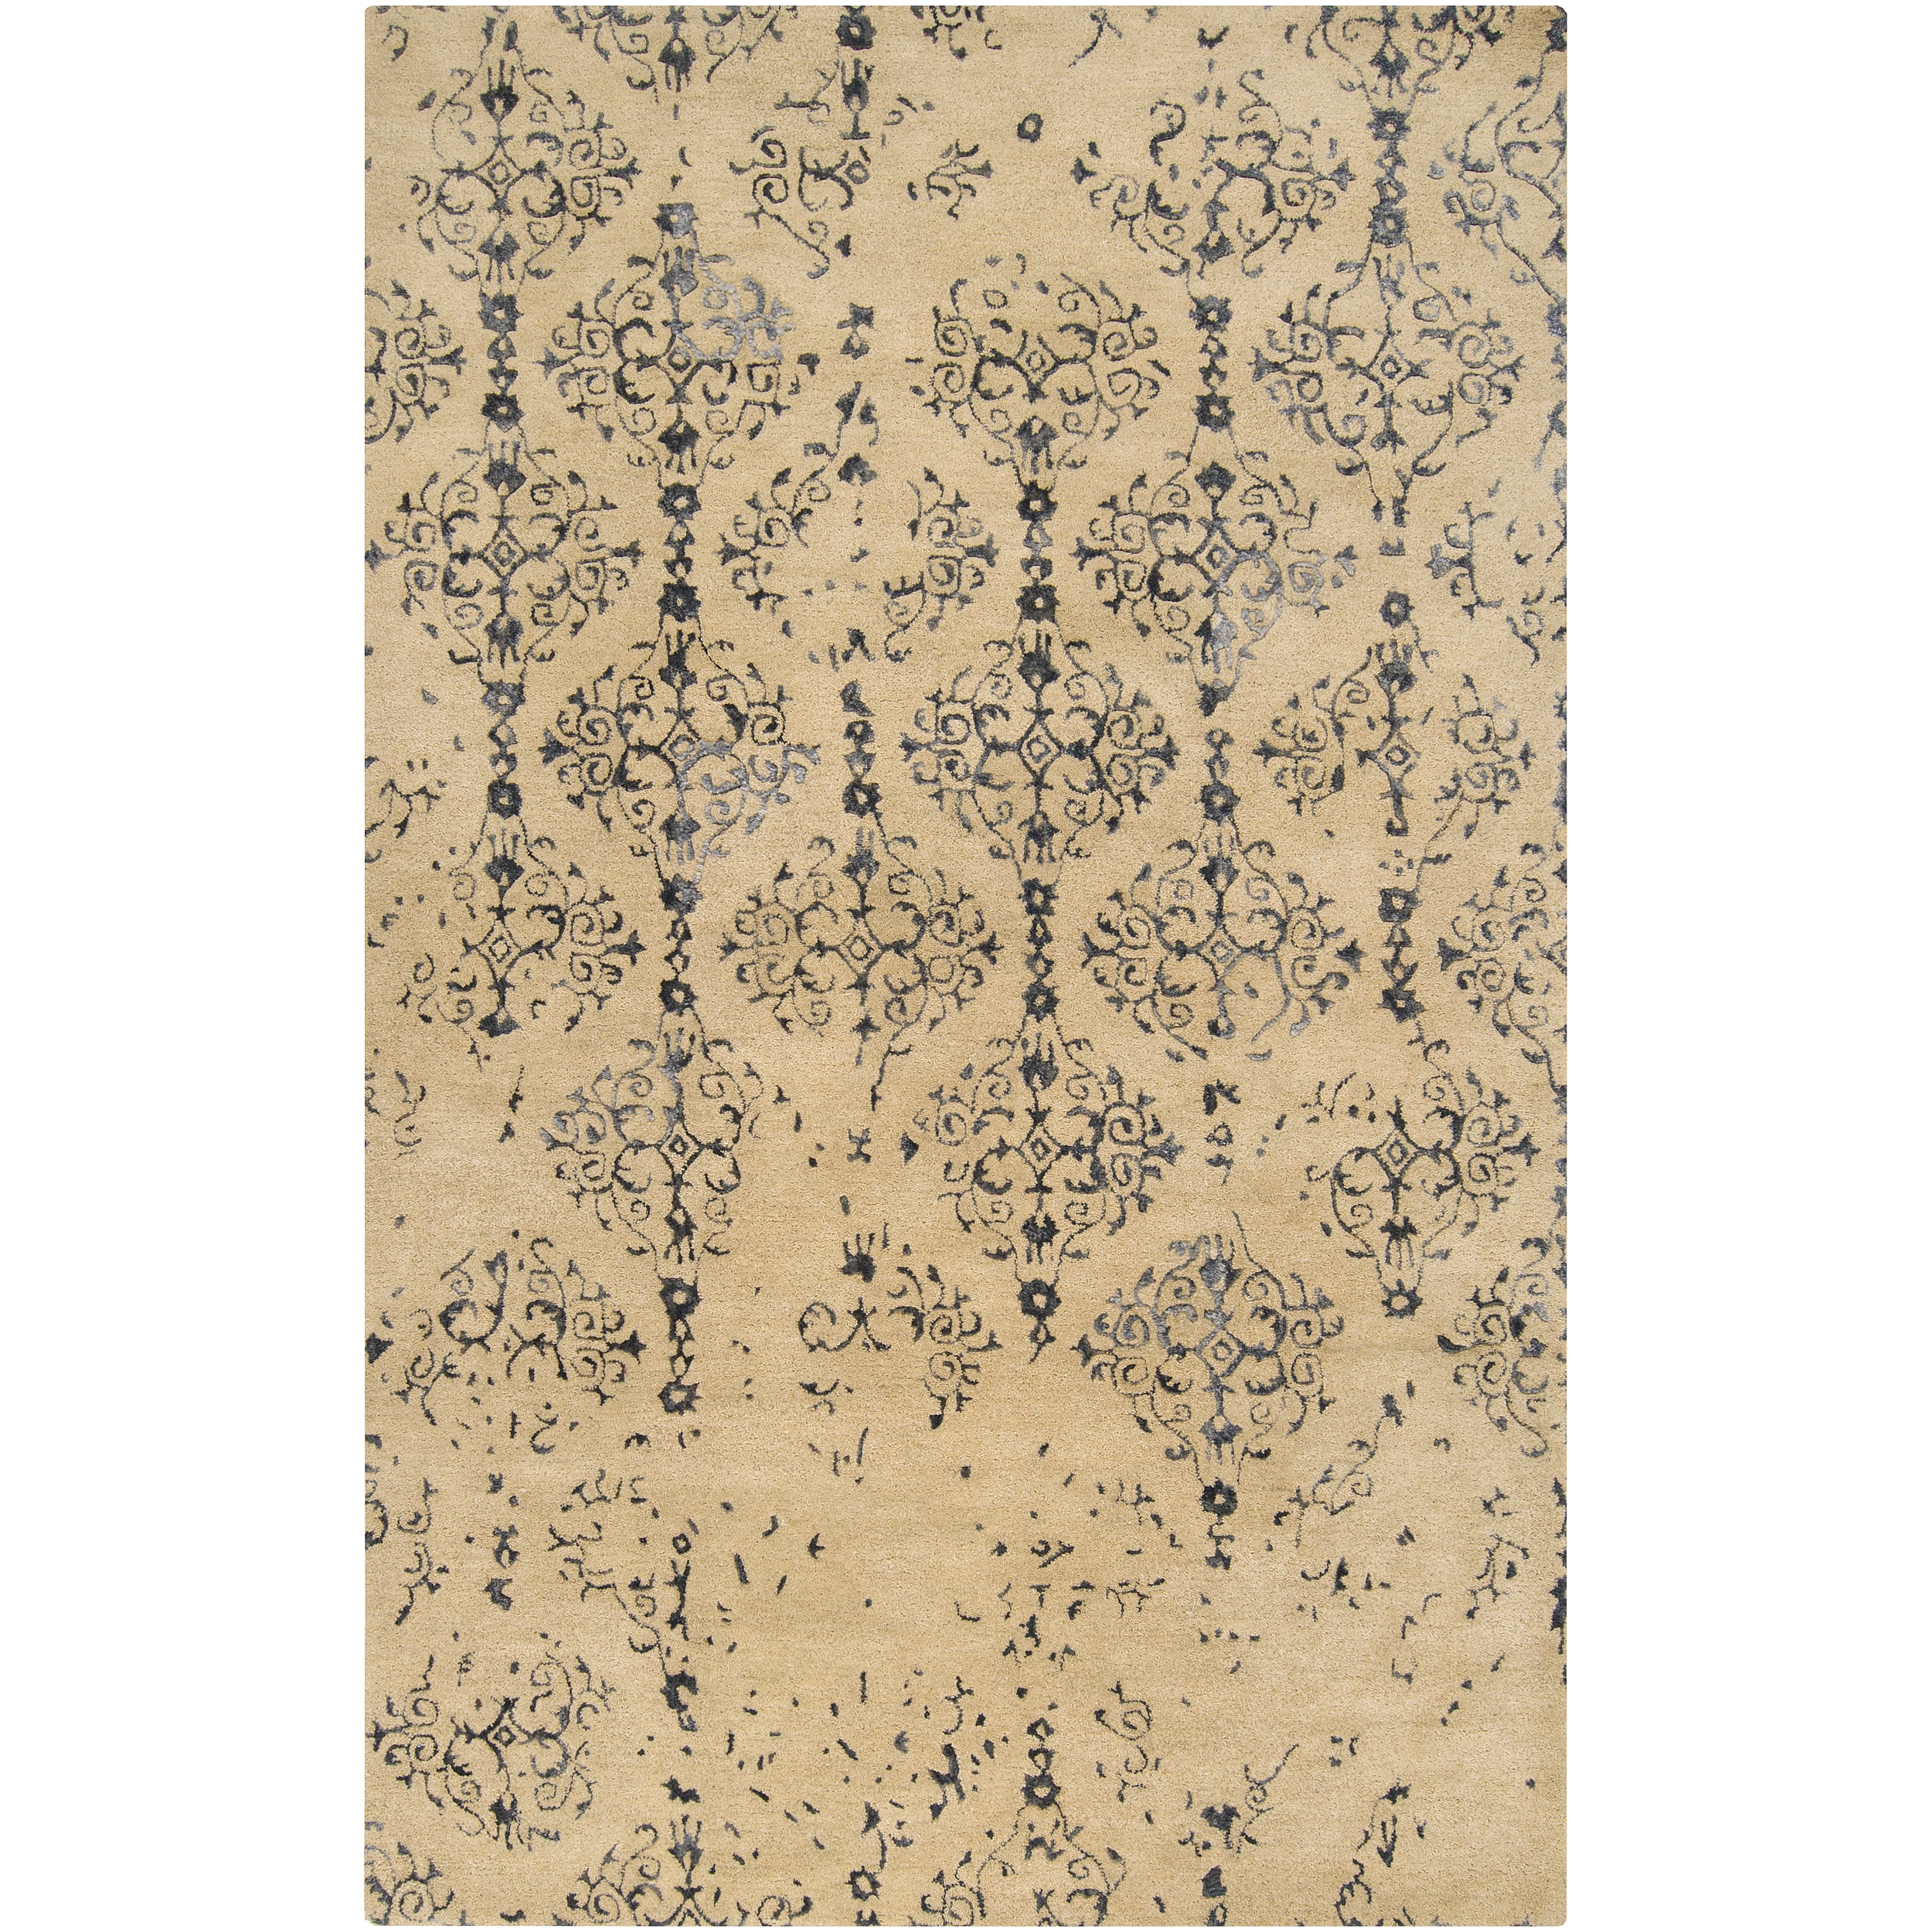 Hand-tufted Contemporary Navy Blue Accented Patterdale New Zealand Wool Abstract Rug (5' x 8')